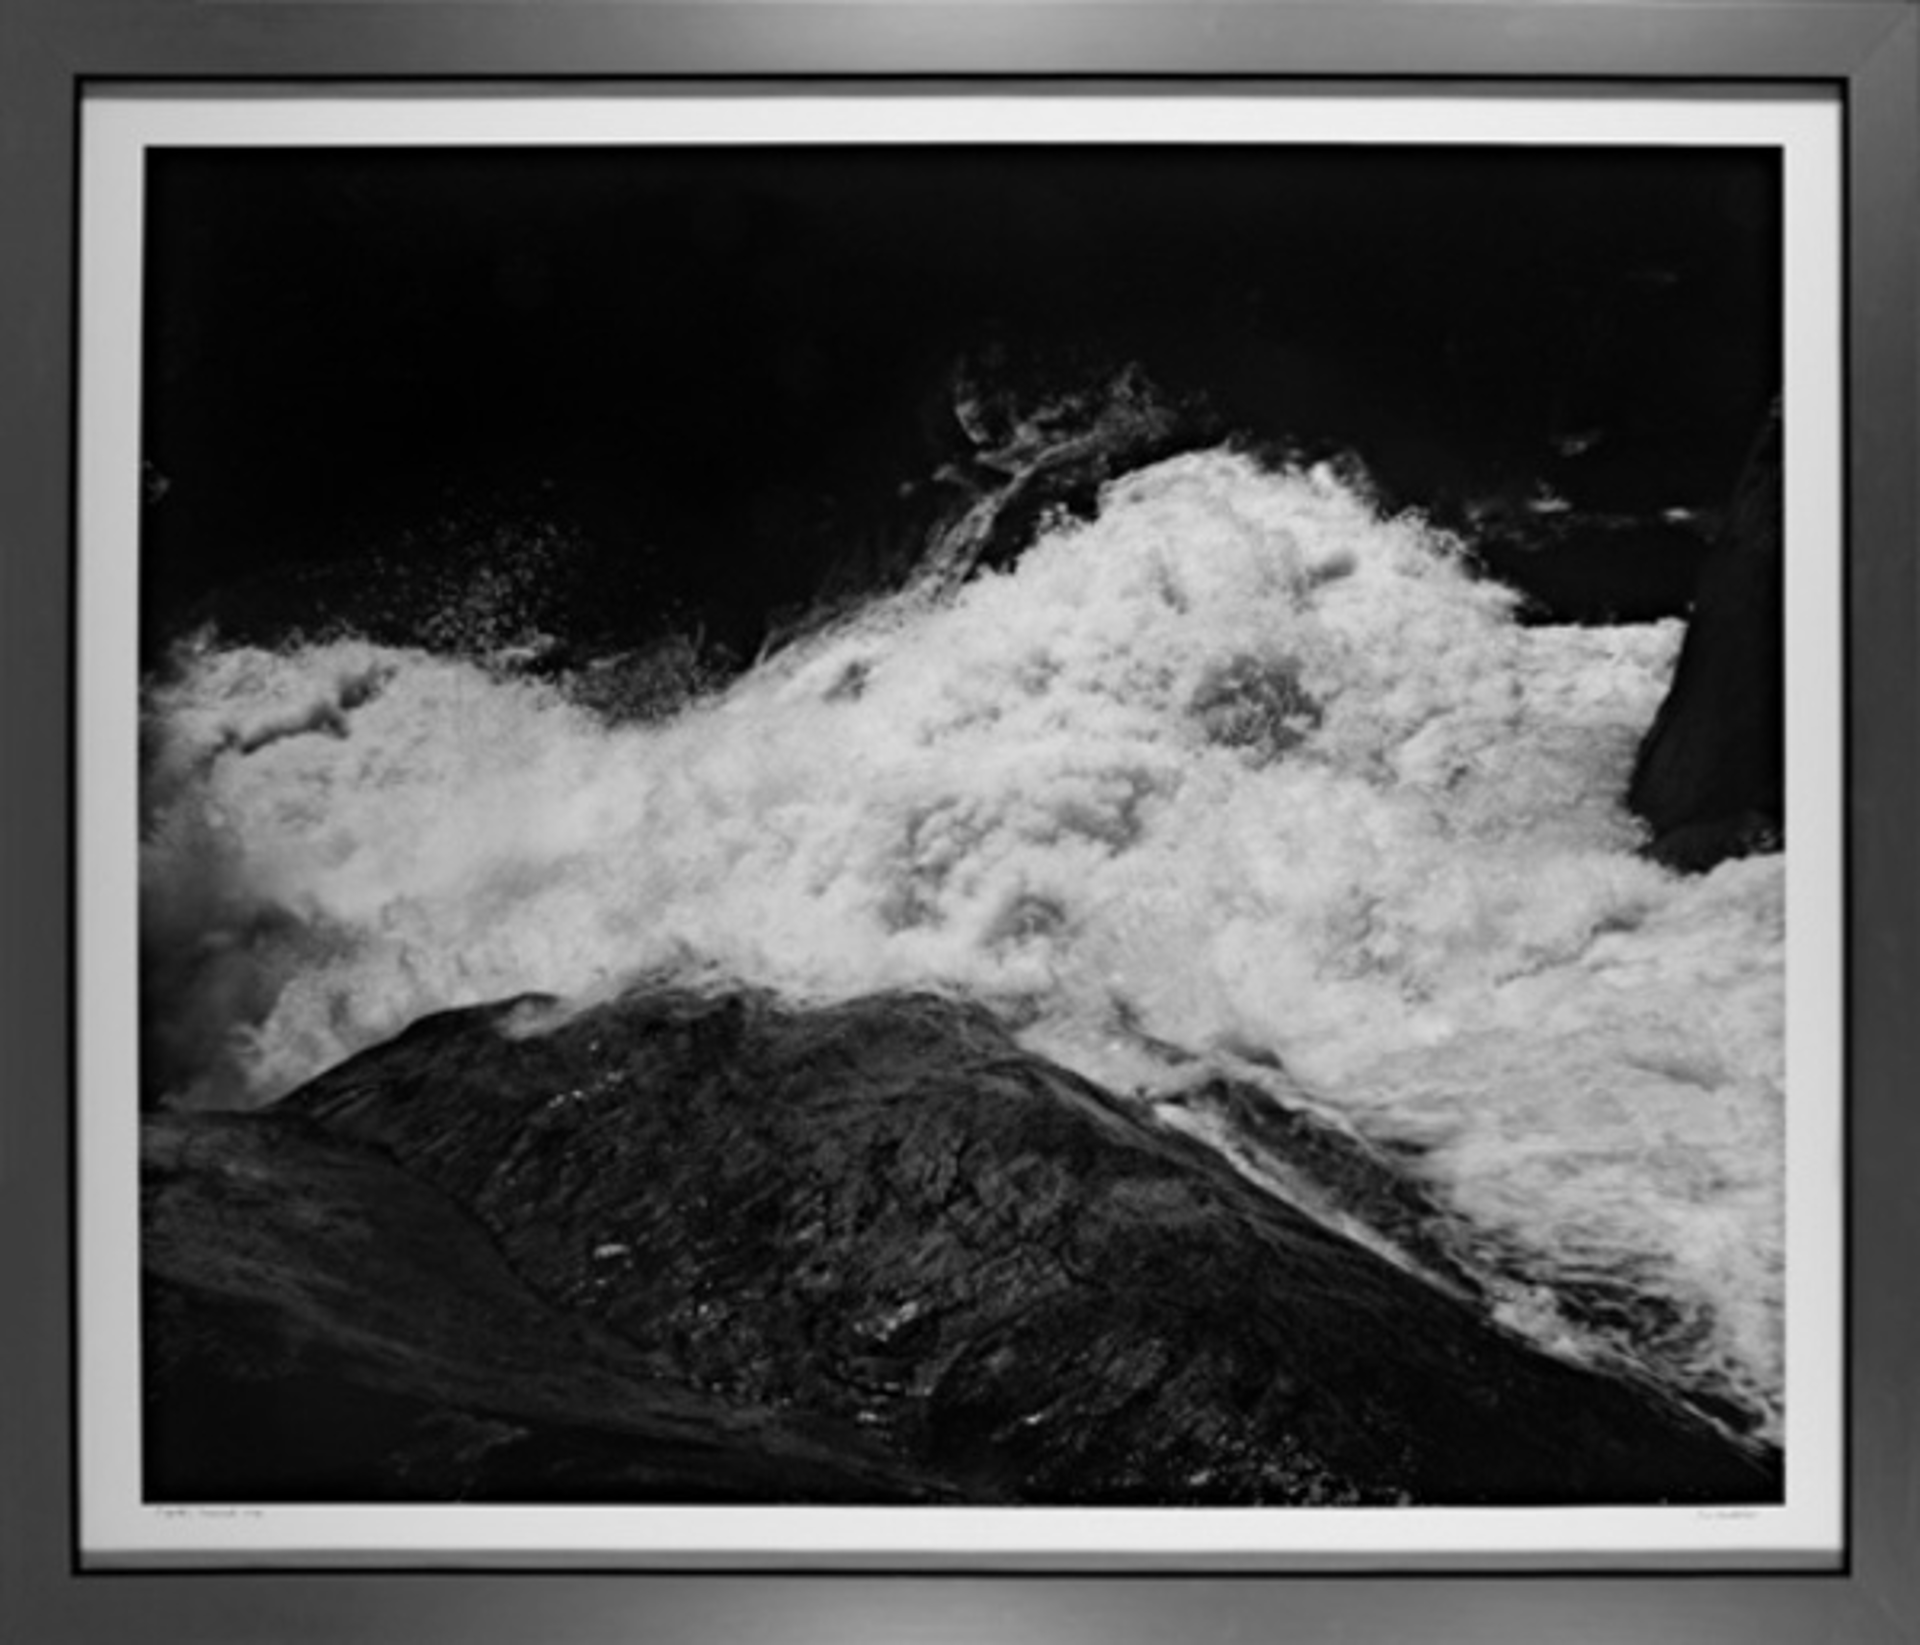 Rapids (Yosemite National Park, CA) by Thomas Ferderbar